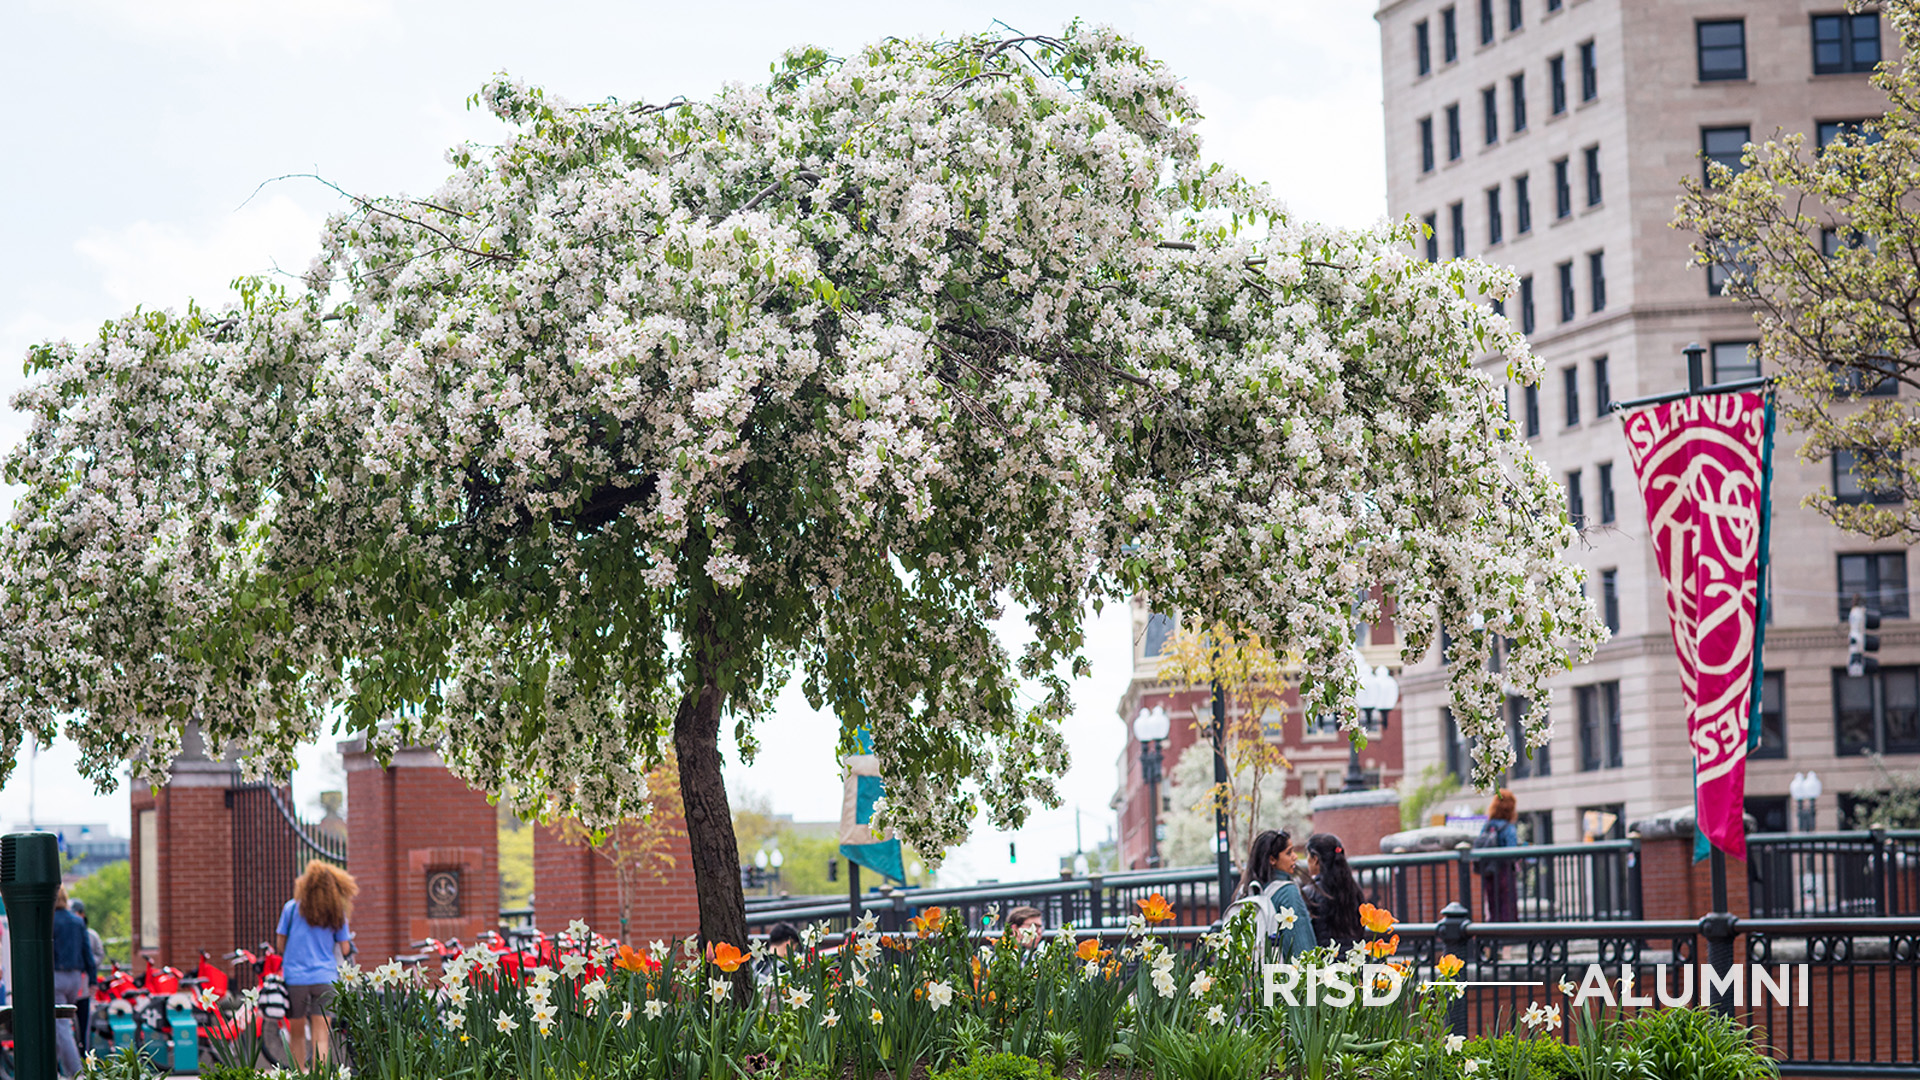 A blooming cherry tree near the Providence river.